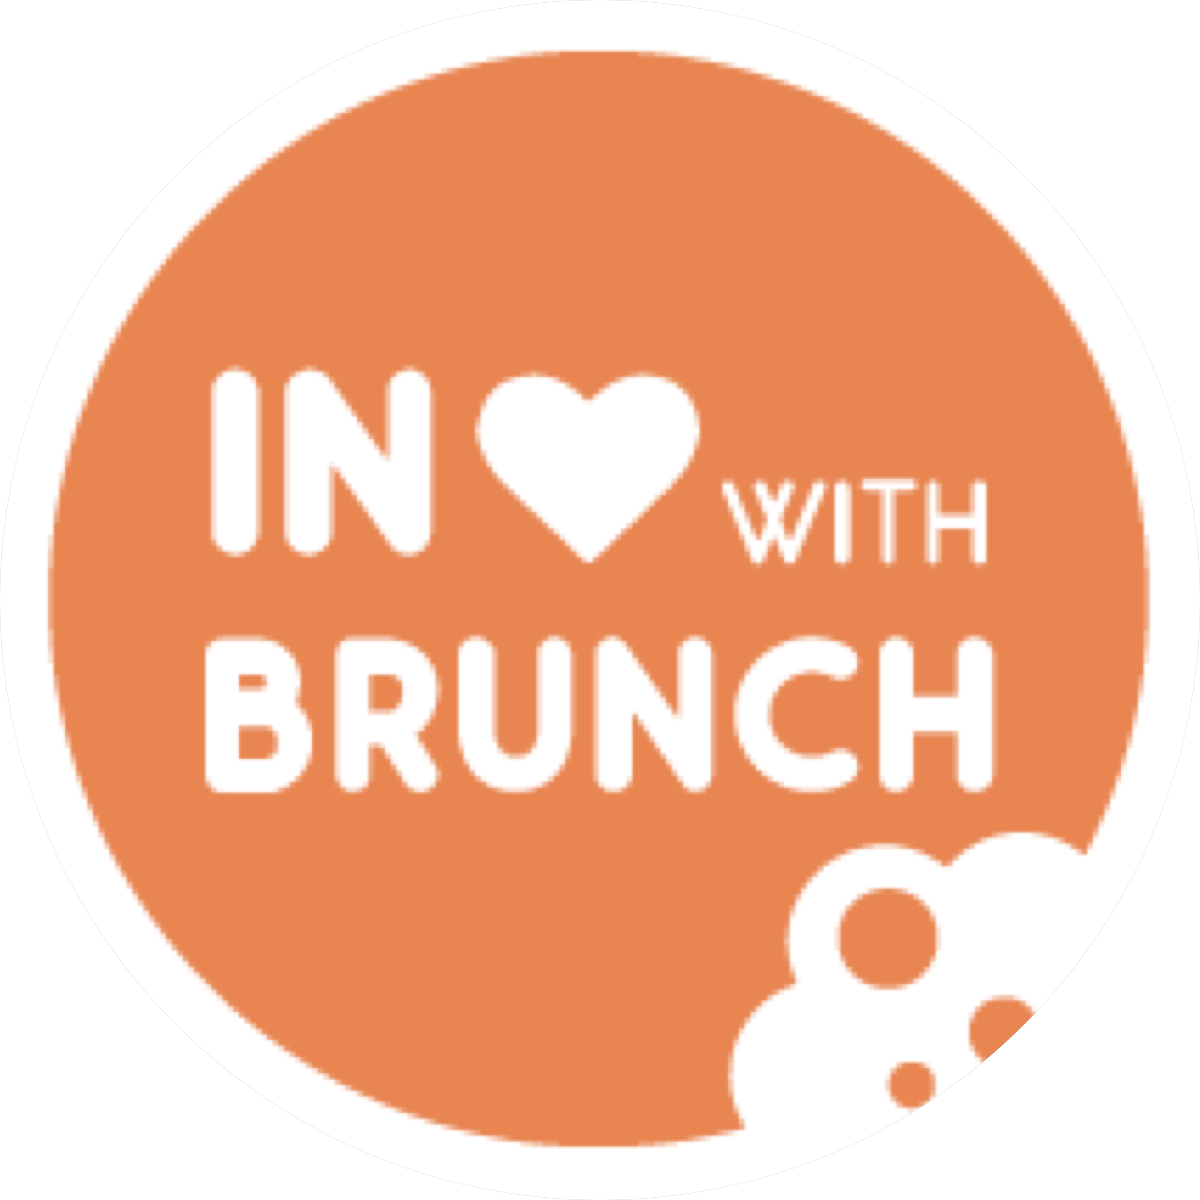 inlovewithbrunch